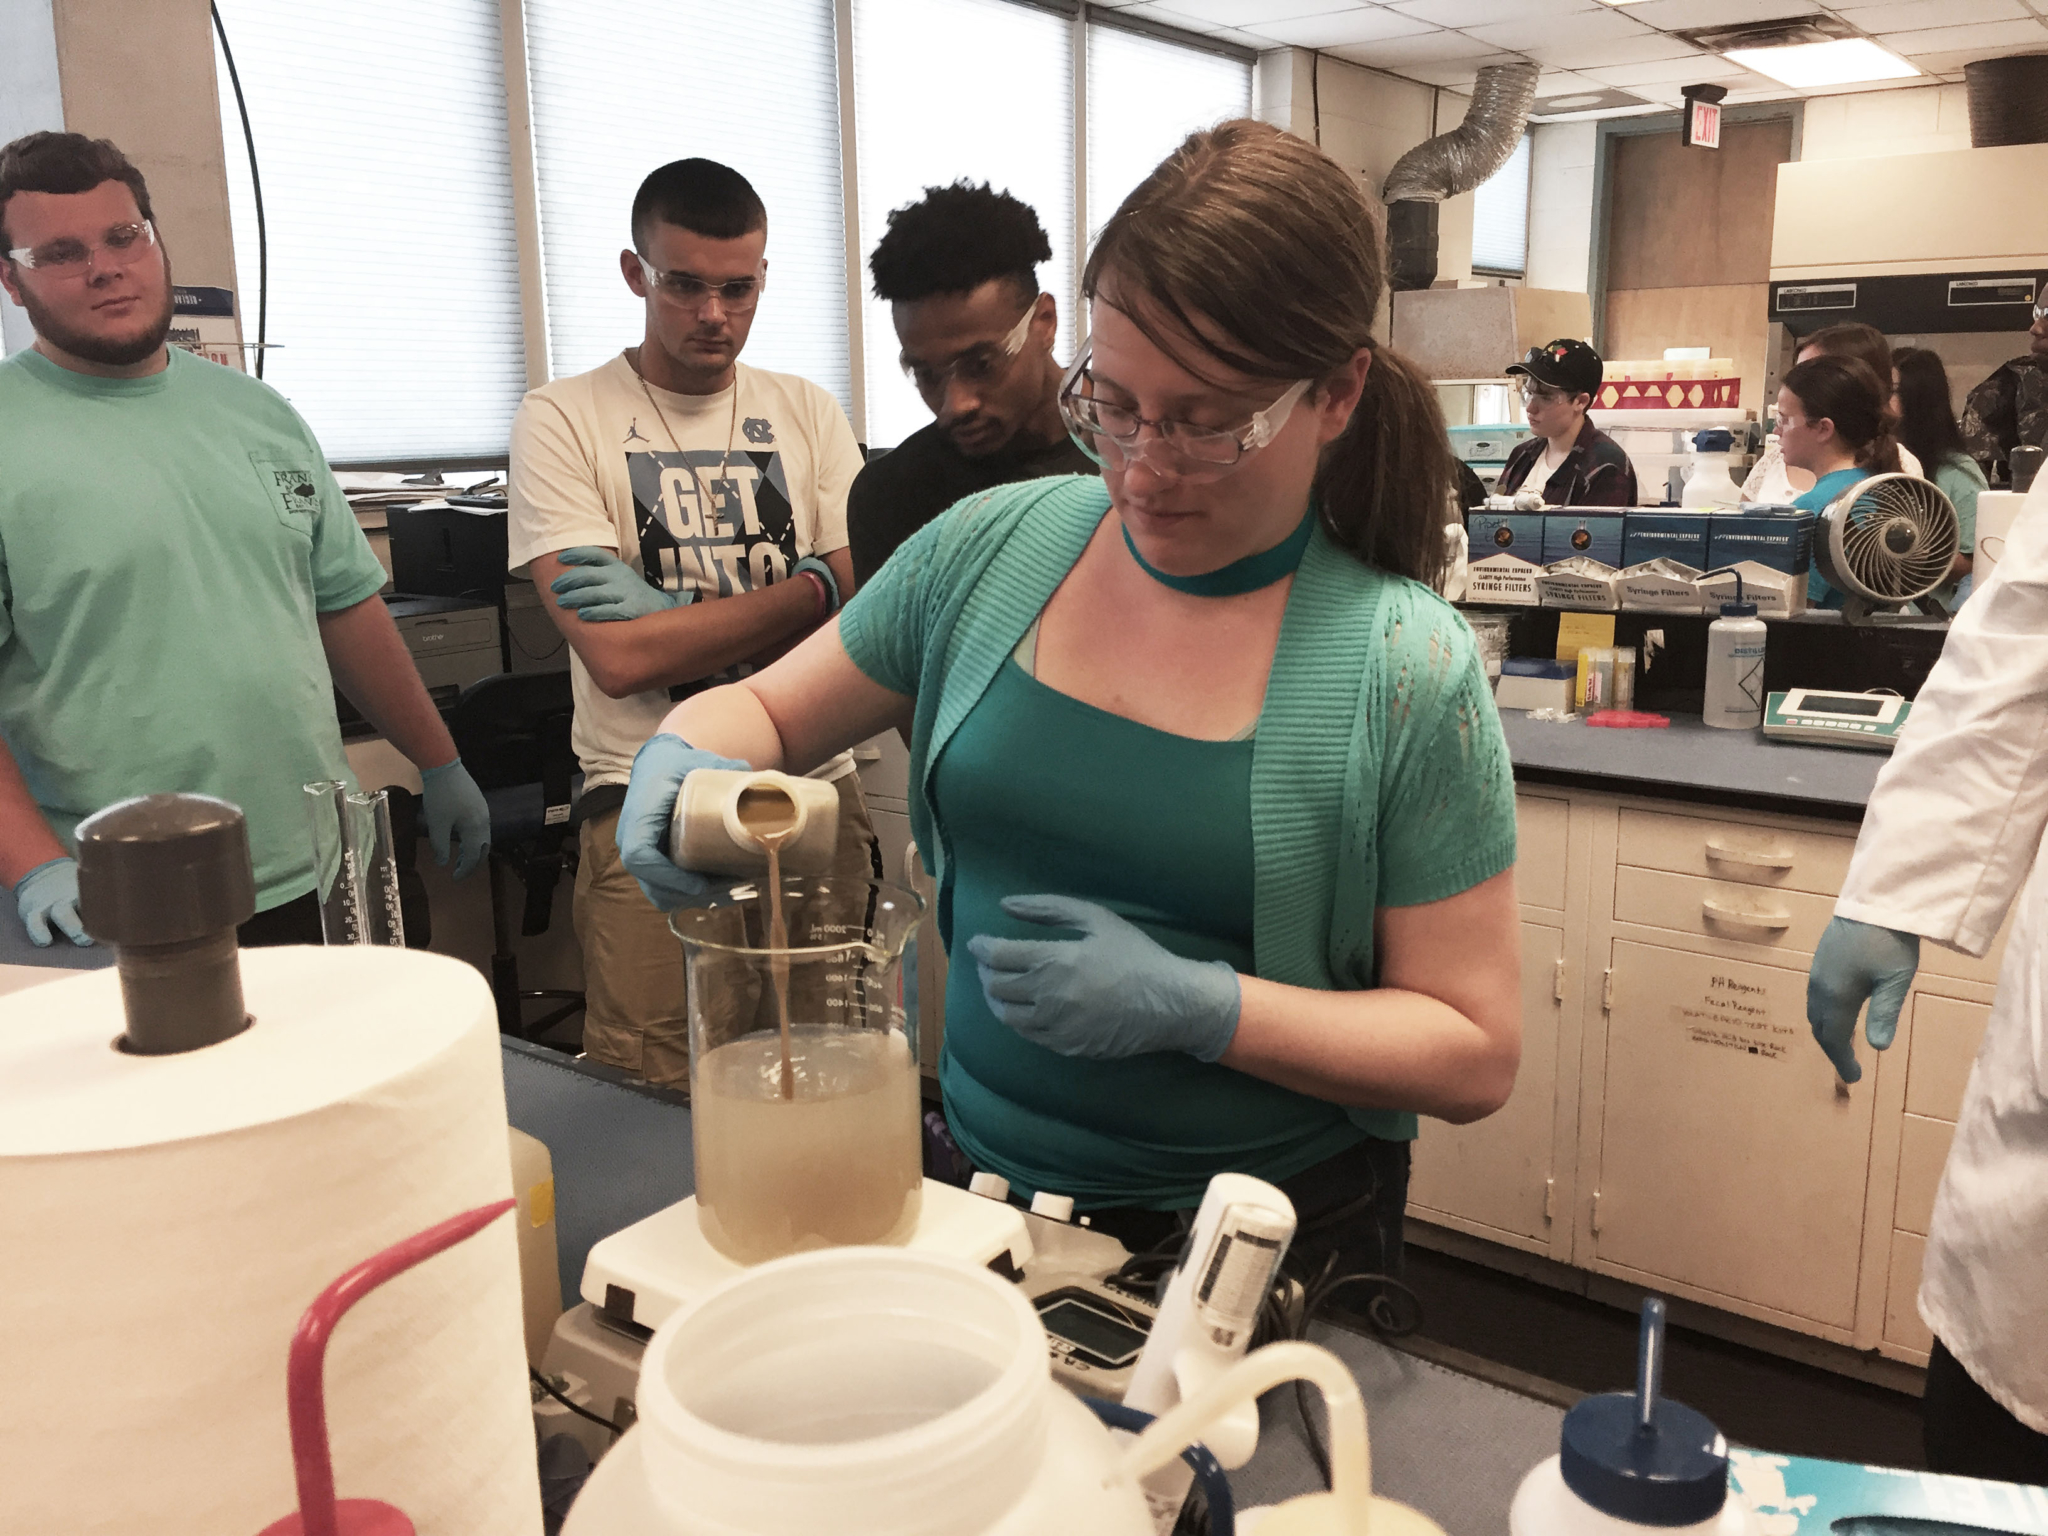 Student Caitlin Edwards performs nitrification rate testing for TRU in the Gaston College lab. (Photo courtesy of Susan Whittemore)